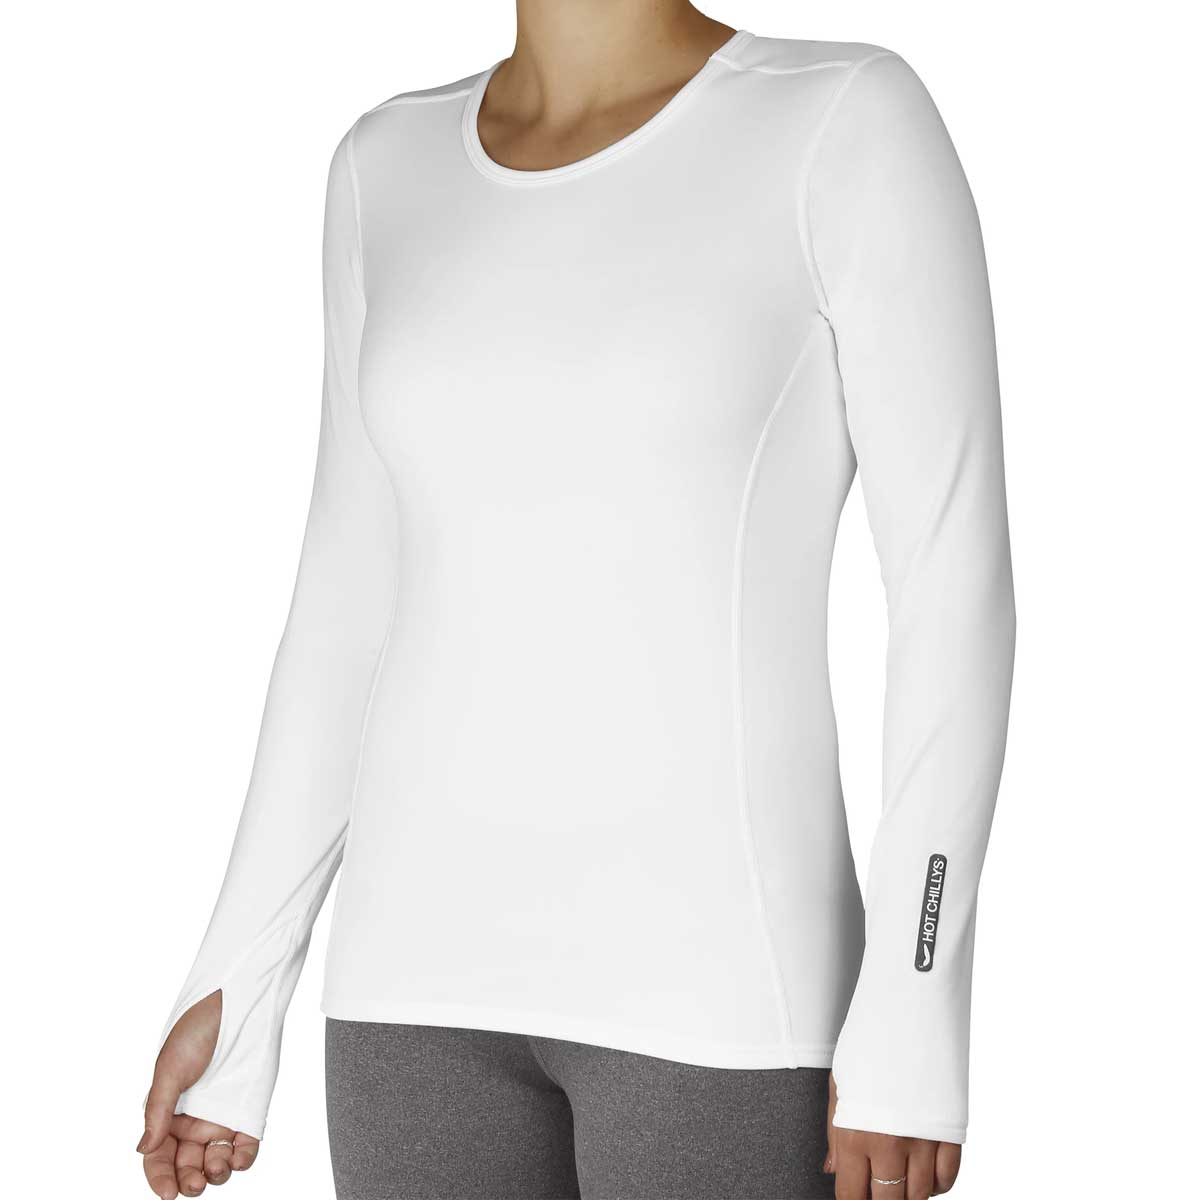 Hot Chillys Women's MEC Crewneck Top in White